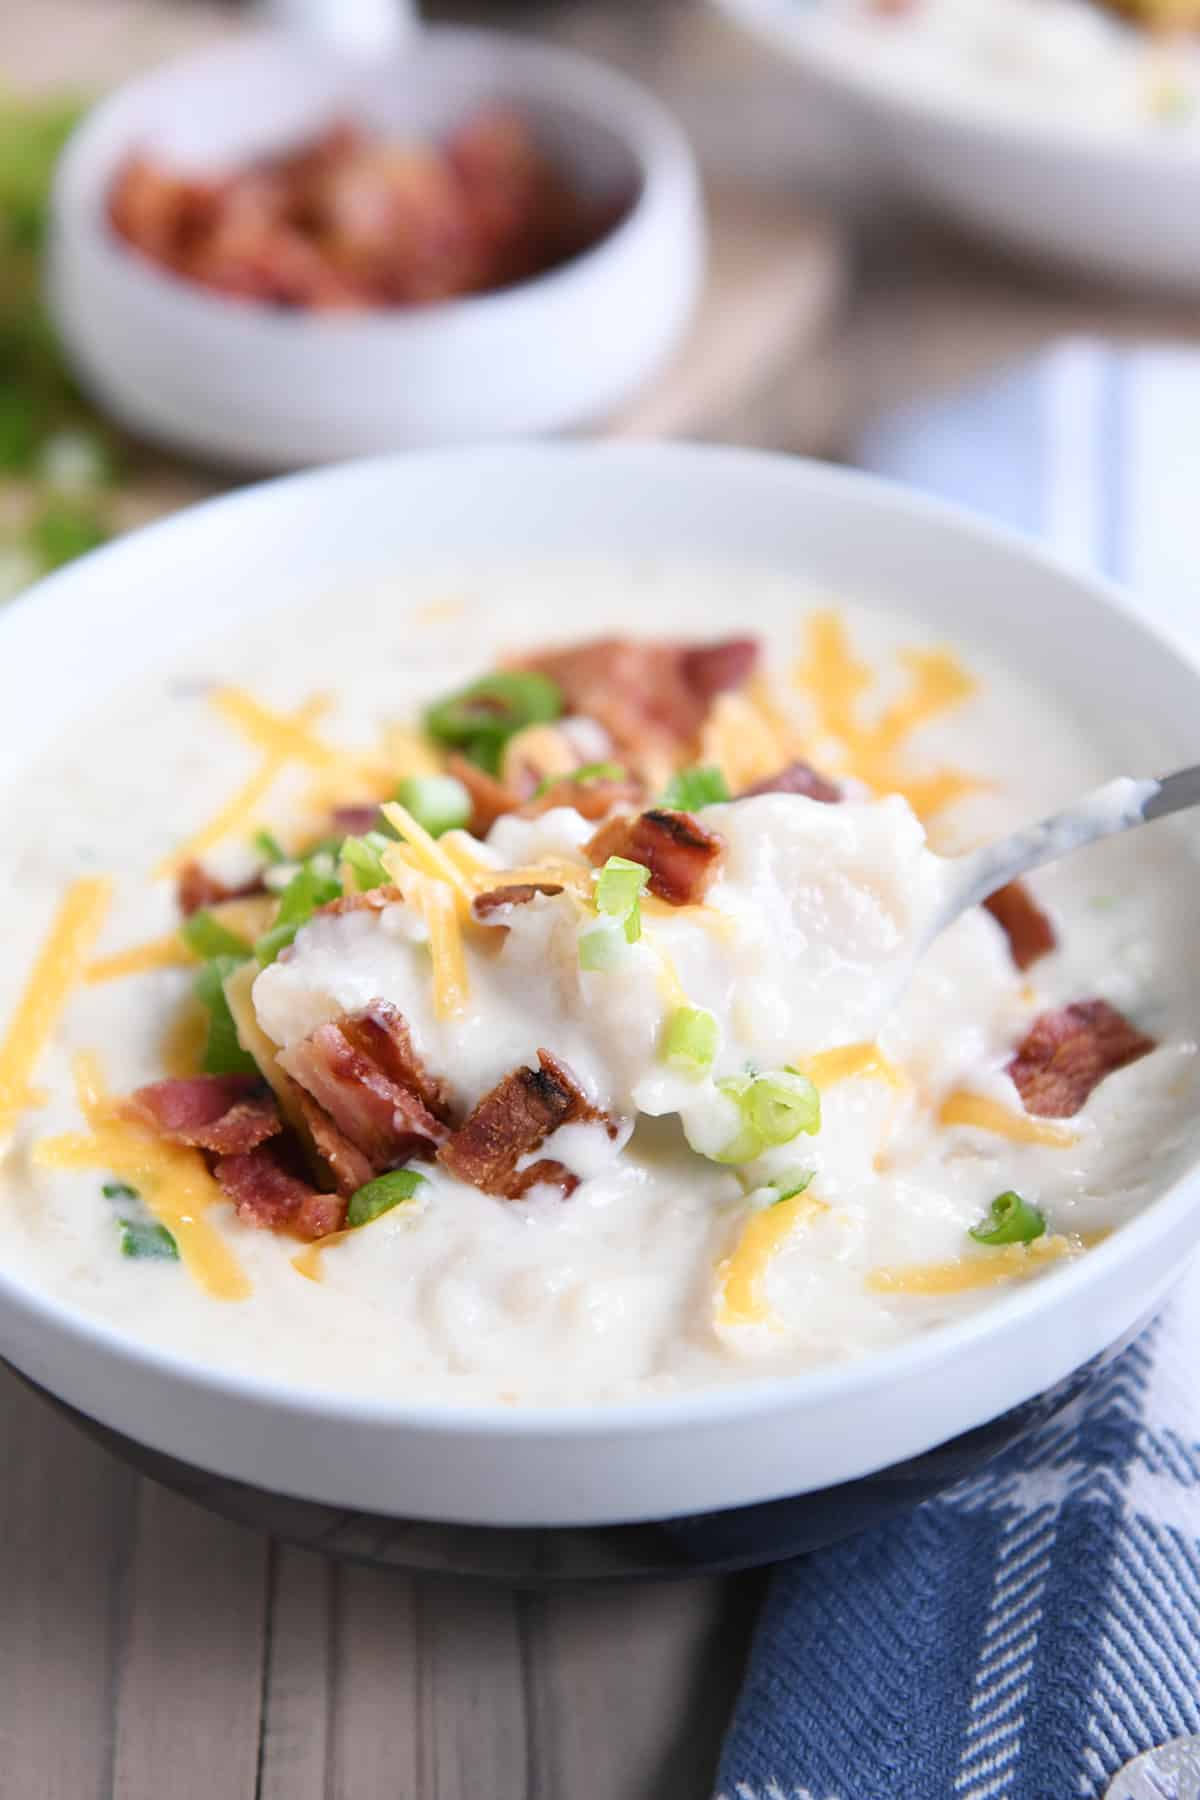 spoon taking scoop out of loaded baked potato soup in white bowl